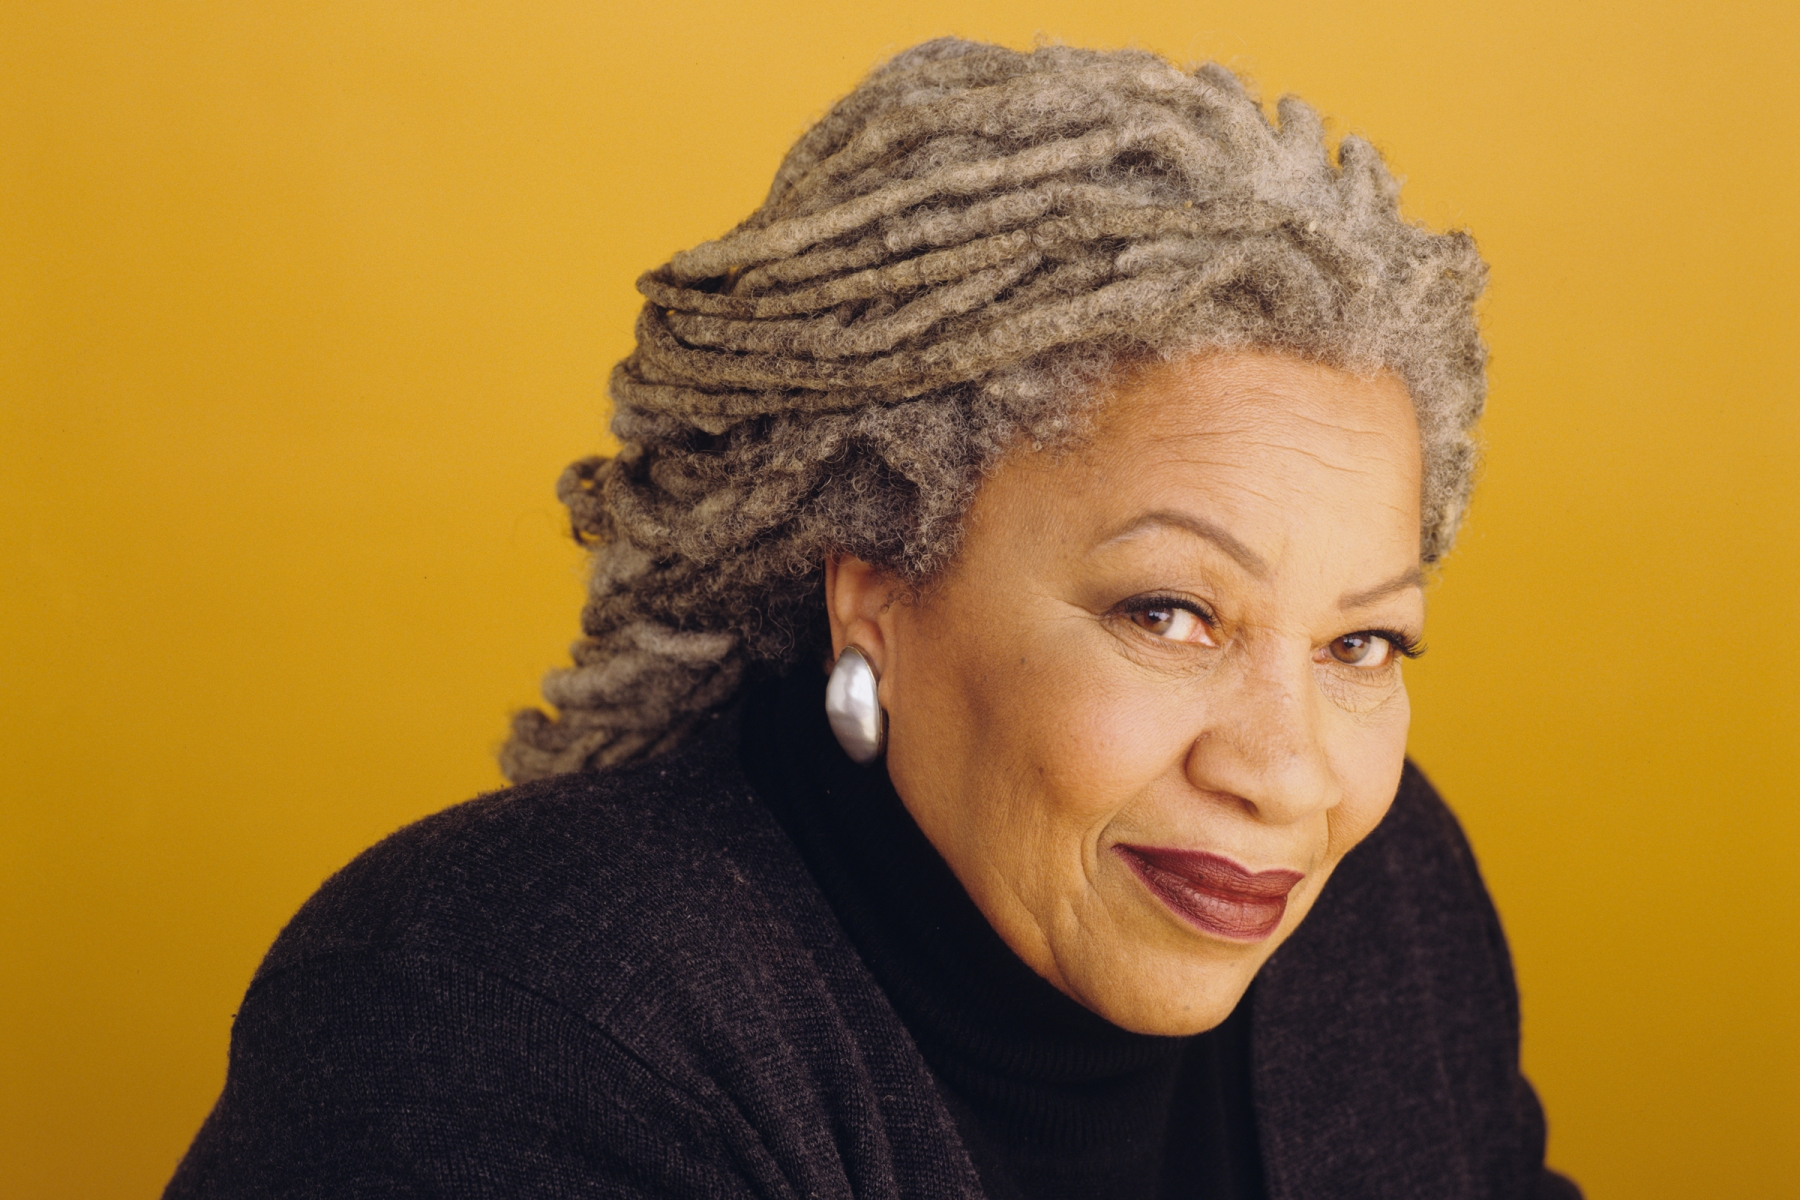 Toni Morrison: 9 Essential Books, Works by Nobel Laureate - Rolling Stone